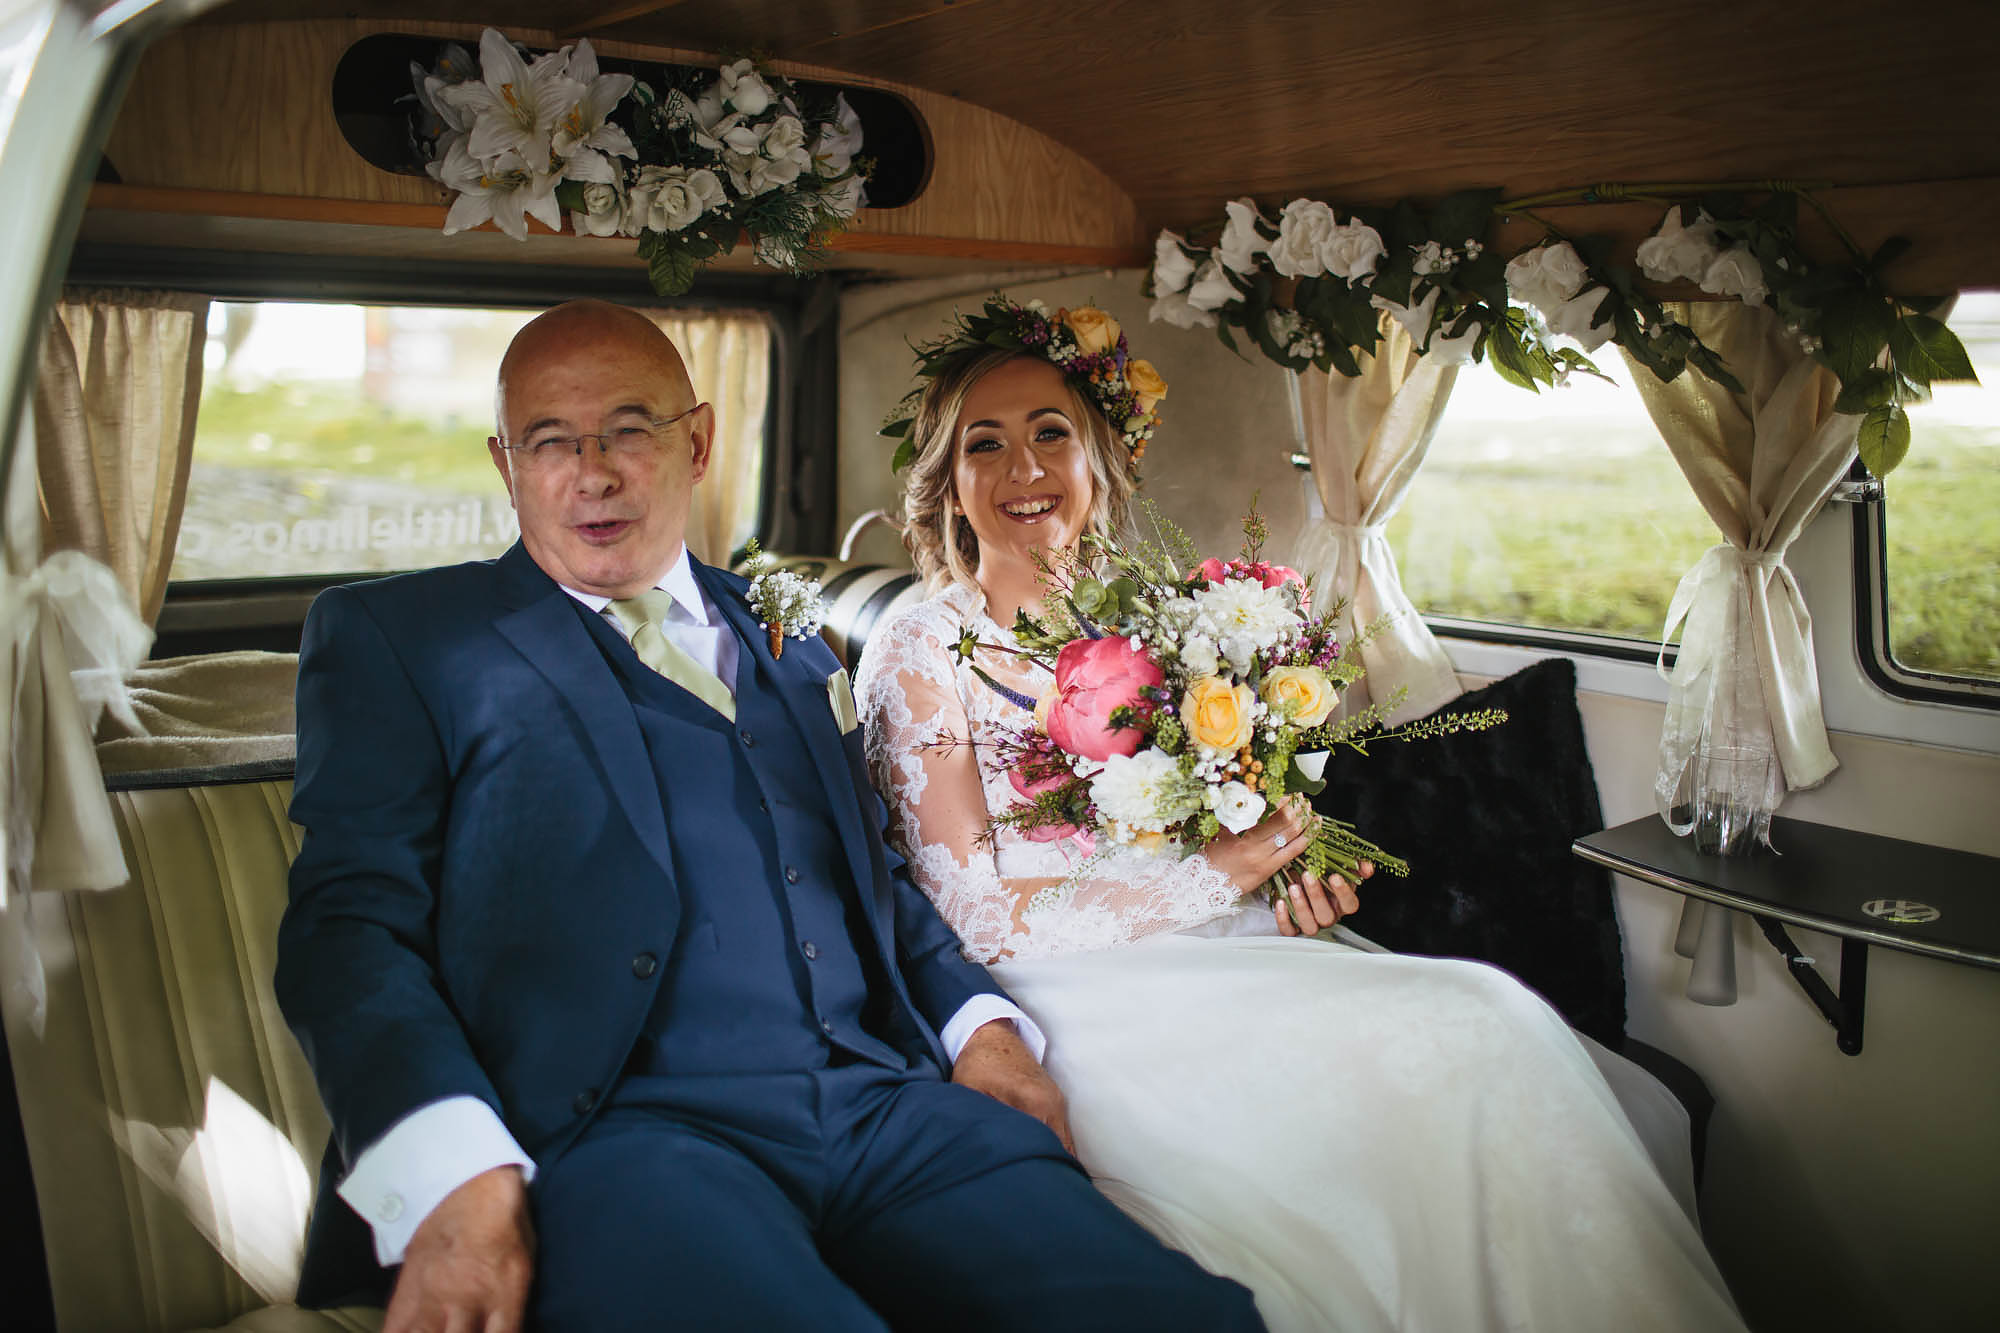 Bride and father arrive in VW camper van at a wedding